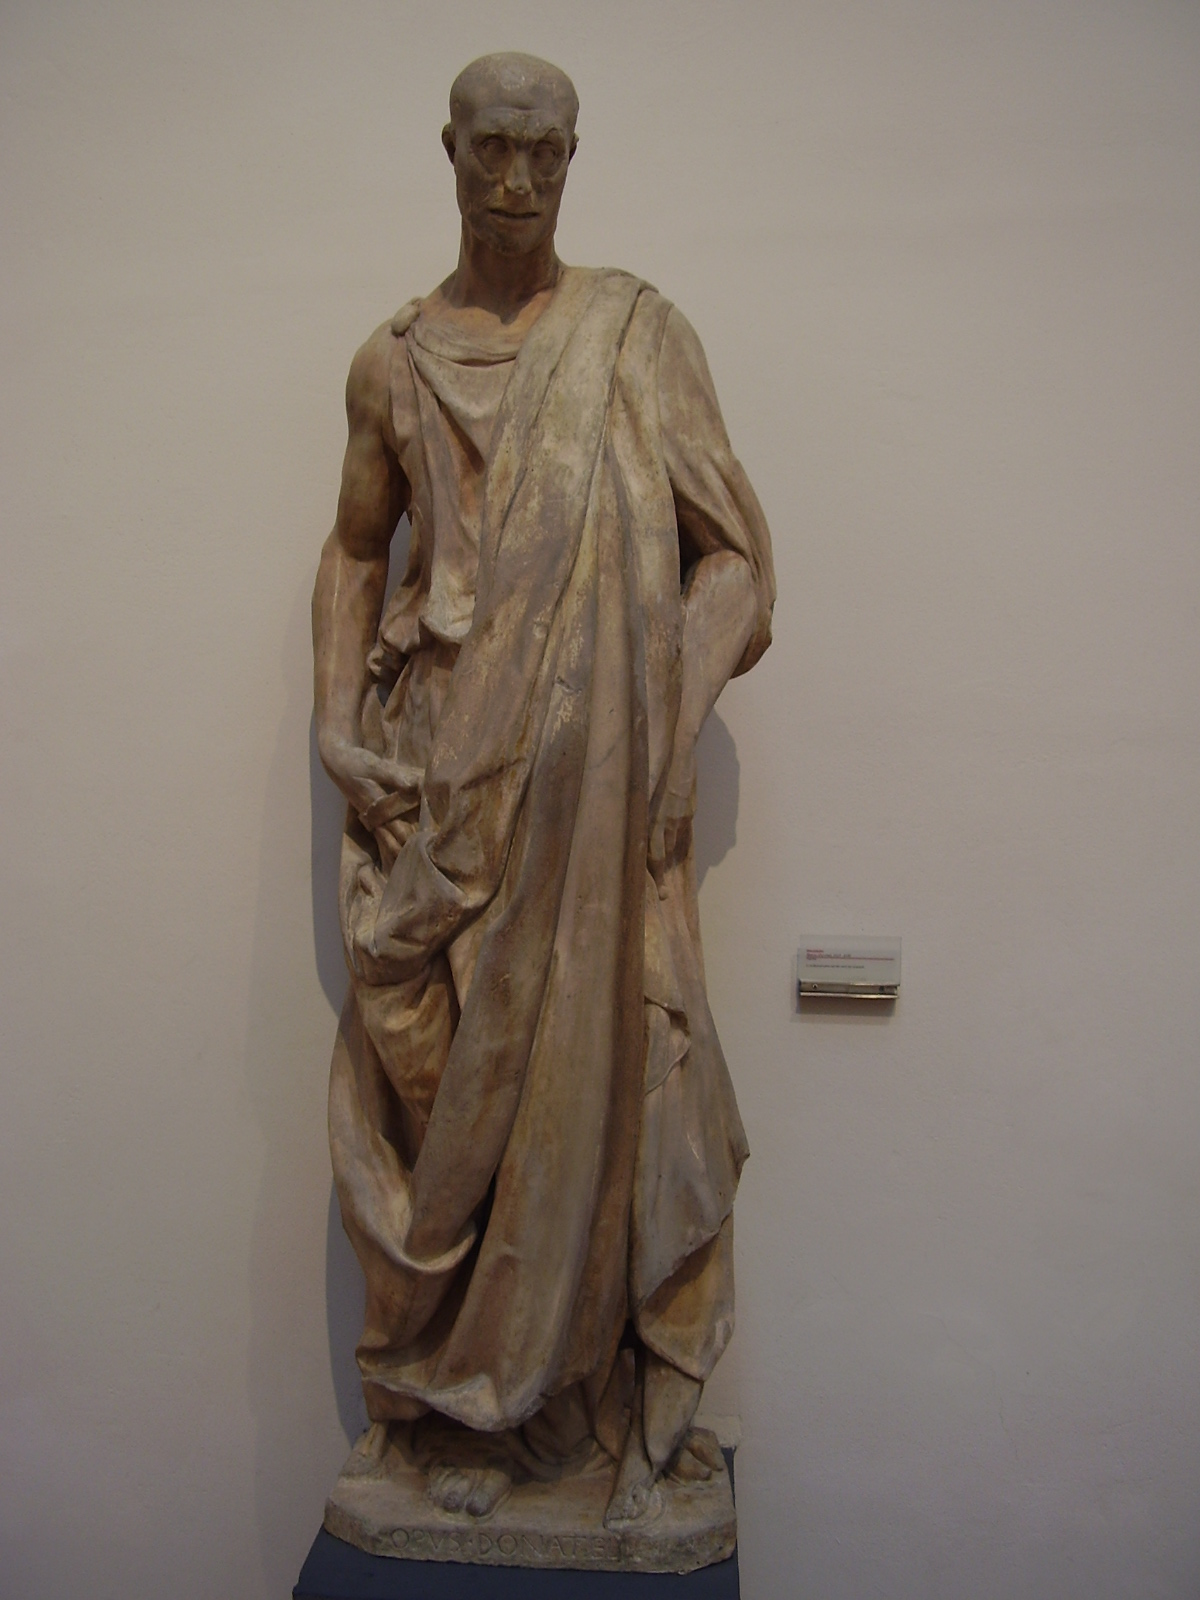 http://upload.wikimedia.org/wikipedia/commons/c/c5/Abacuc_di_donatello.JPG